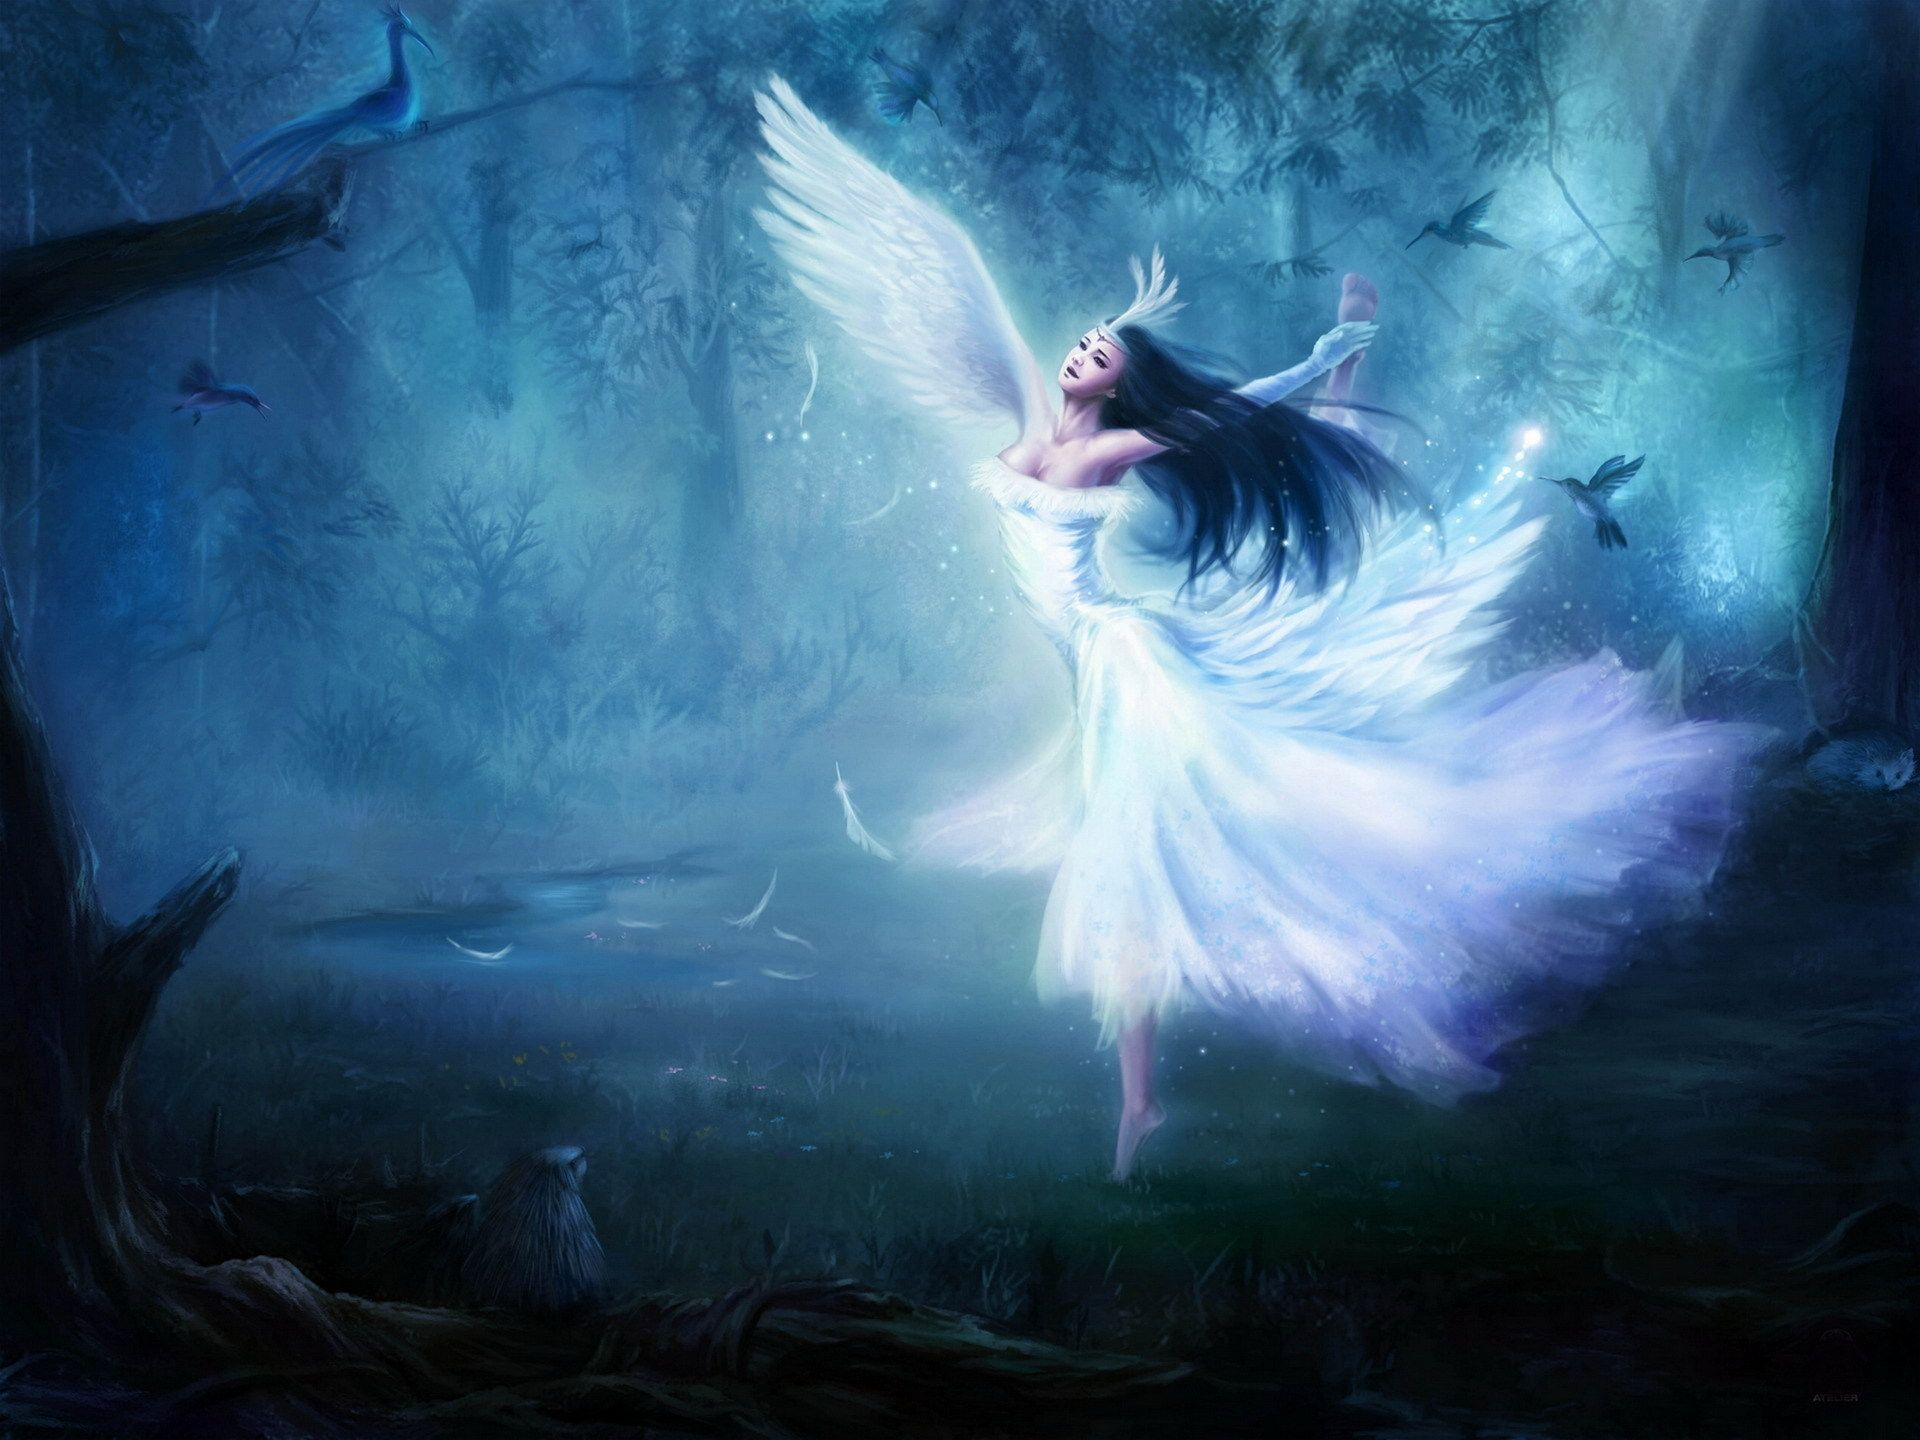 Download free fantasy wallpapers angel wallpaper backgrounds download free fantasy wallpapers angel wallpaper backgrounds wallpaperbackgrounds voltagebd Gallery